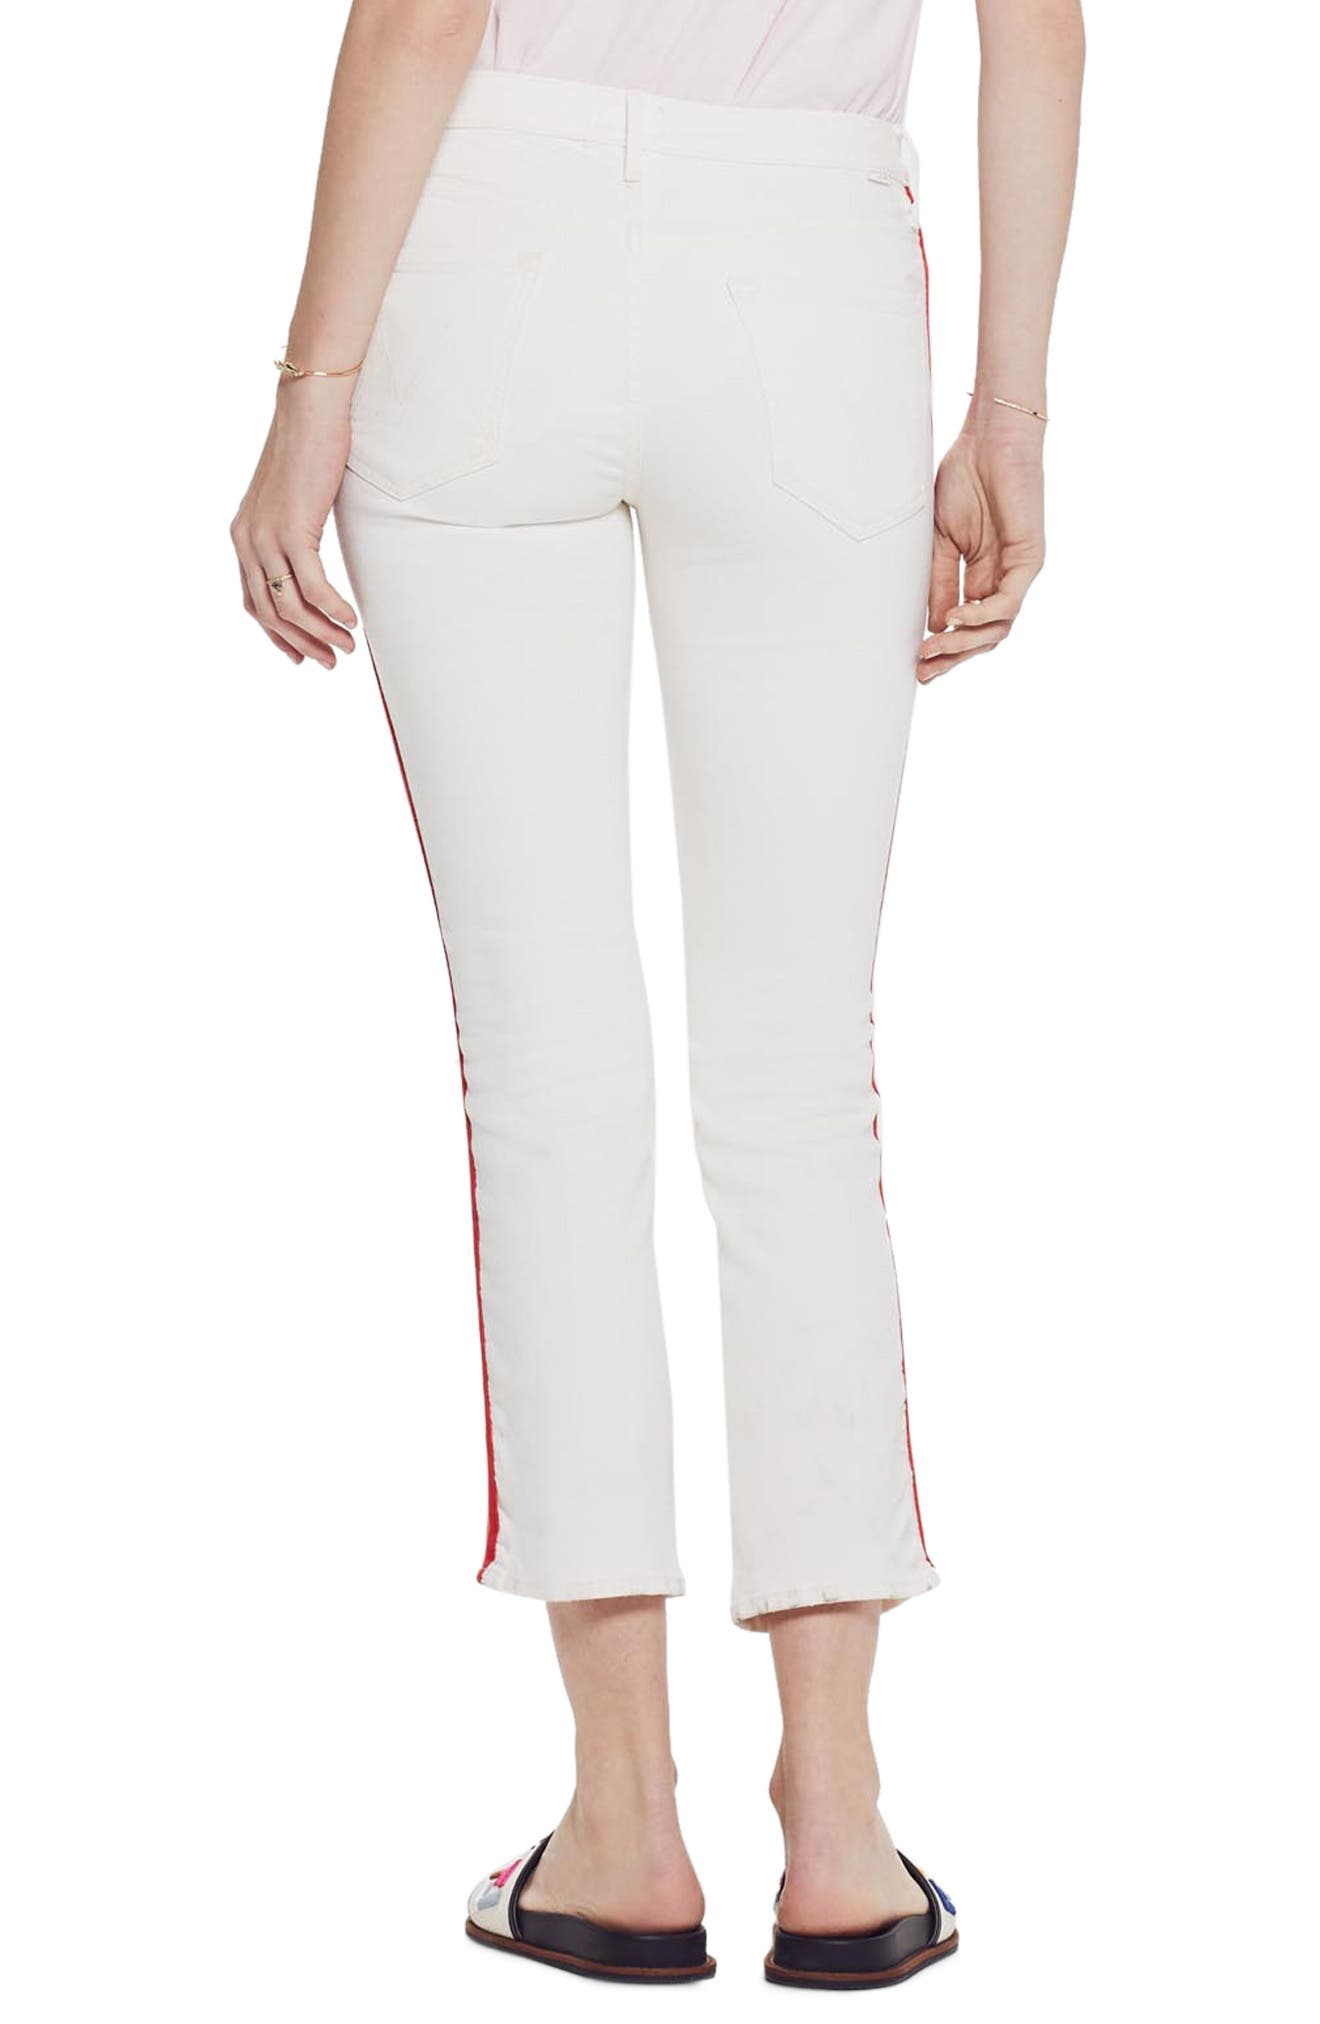 MOTHER, The Dazzler Mid Rise Crop Slim Jeans, Alternate thumbnail 2, color, WHIPPING THE CREAM PINK RACER